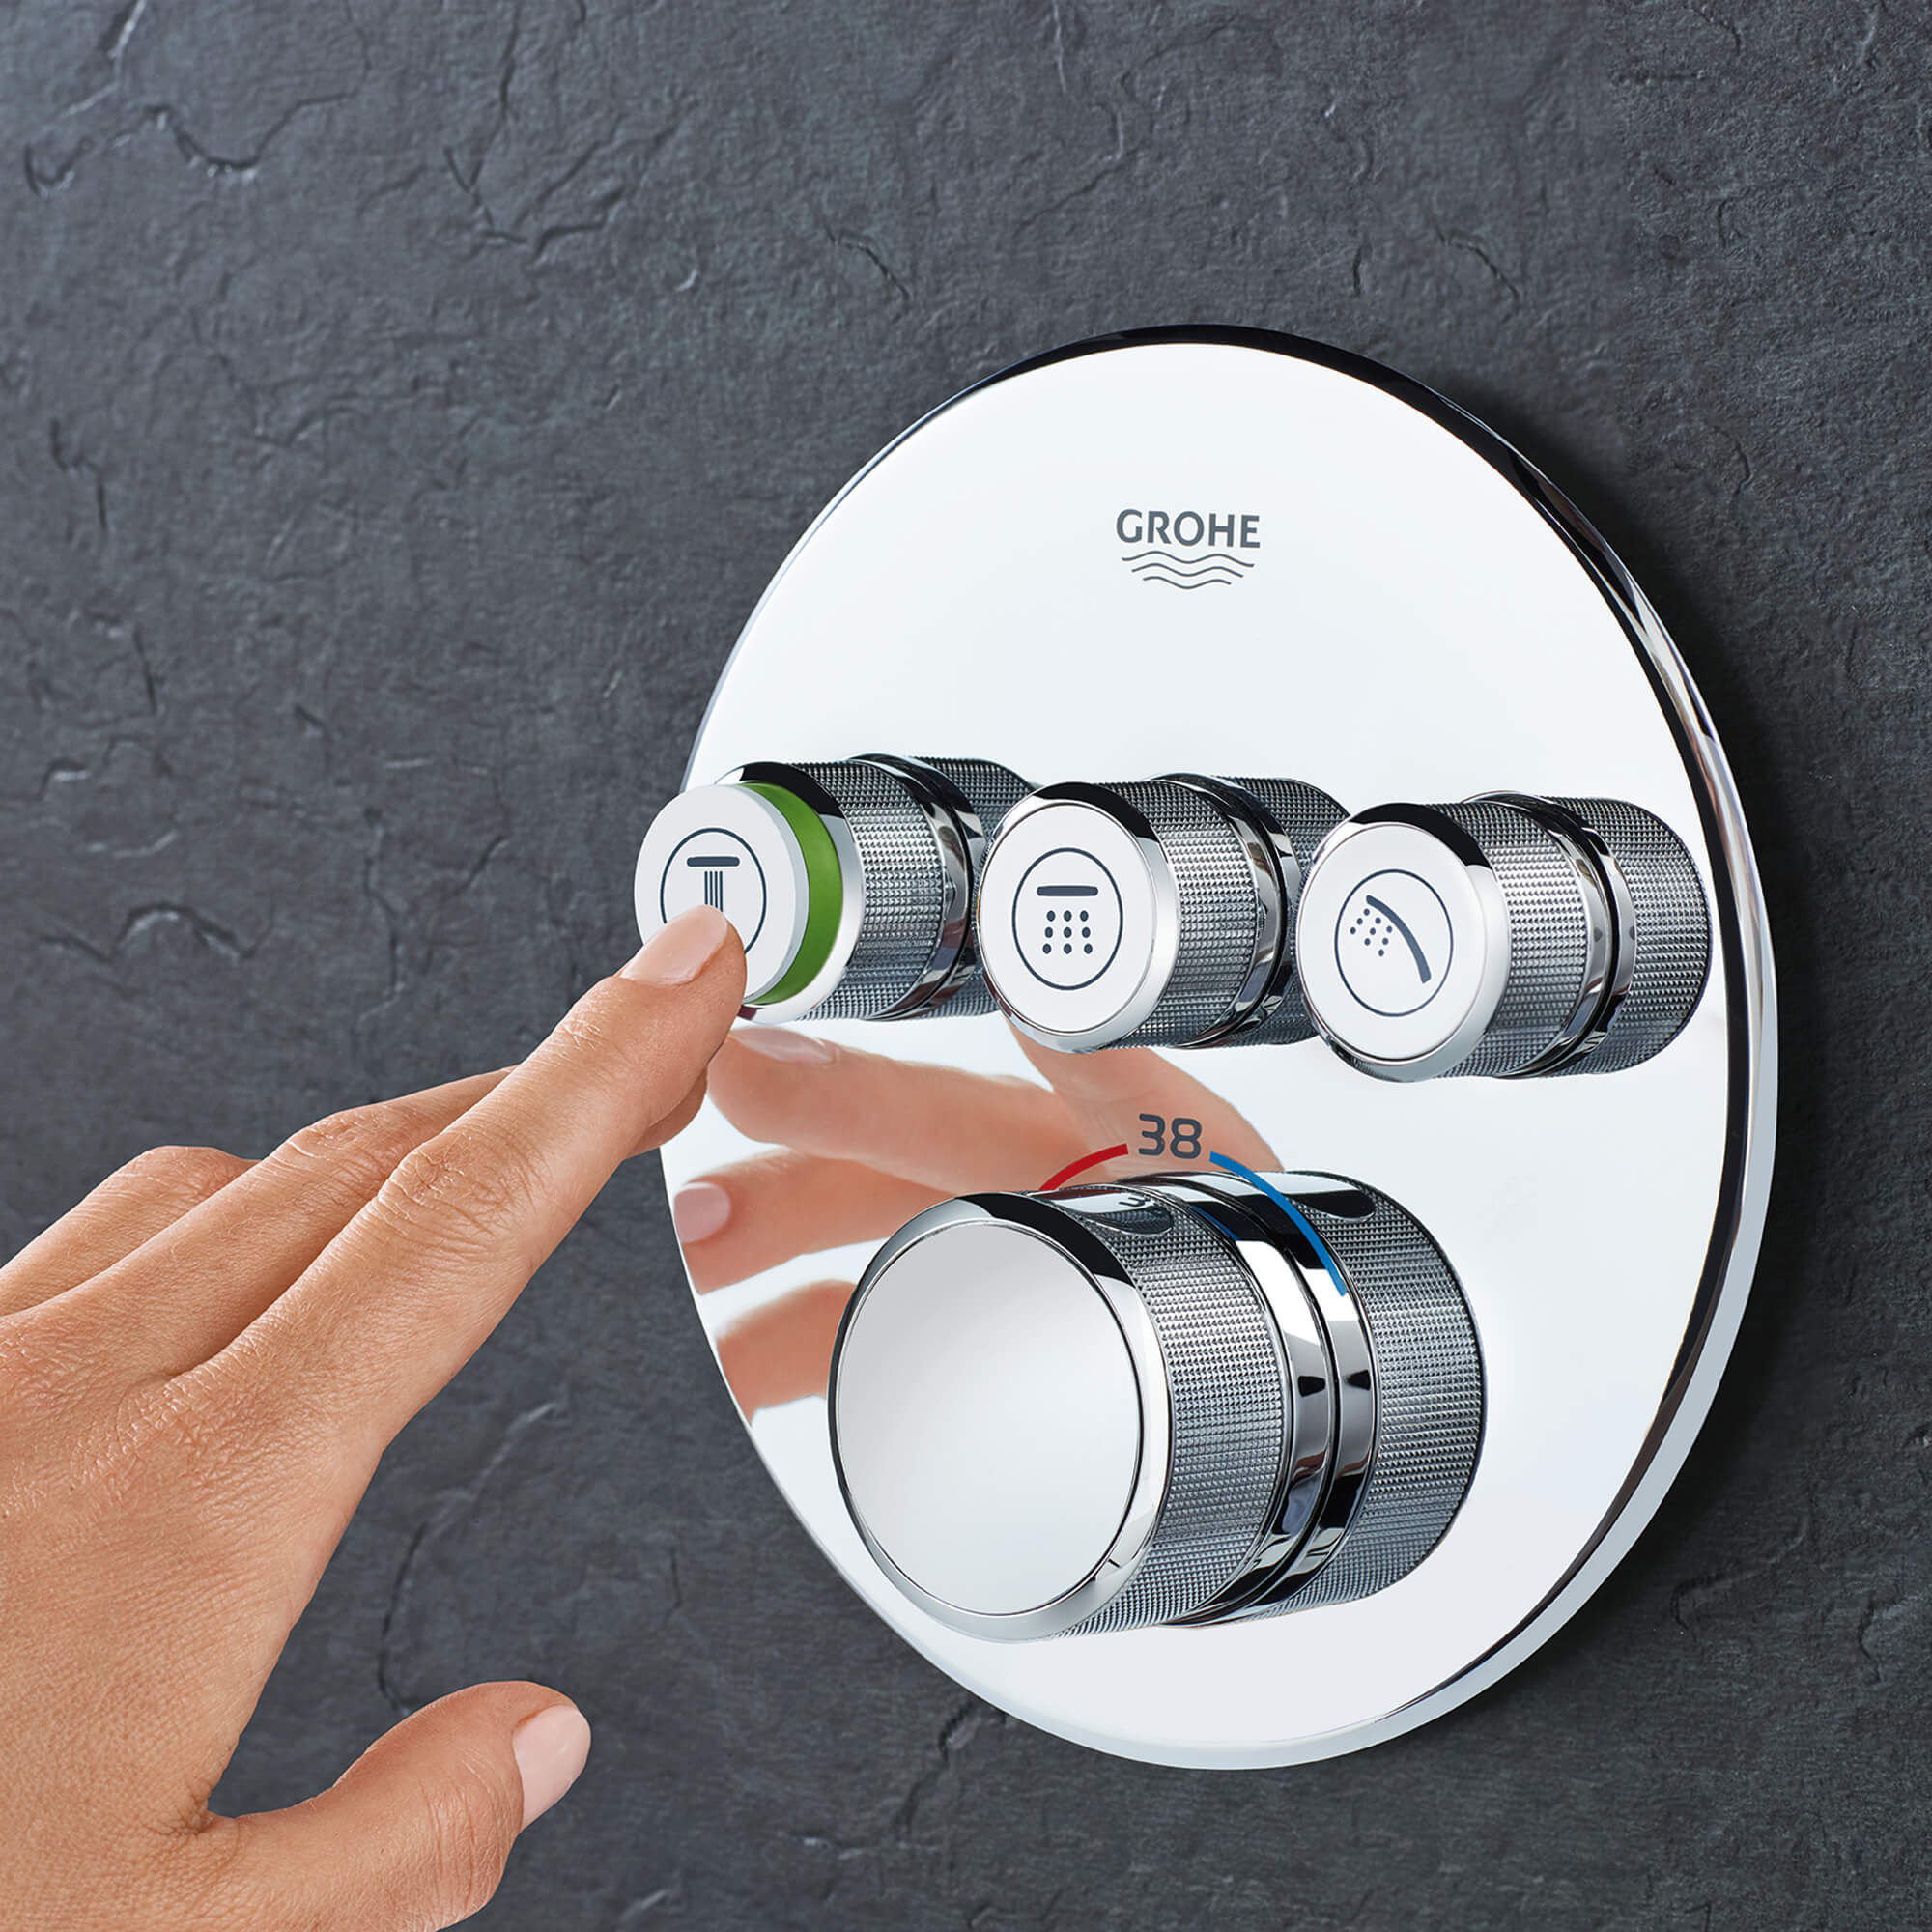 smartcontrol push, pause, start shower